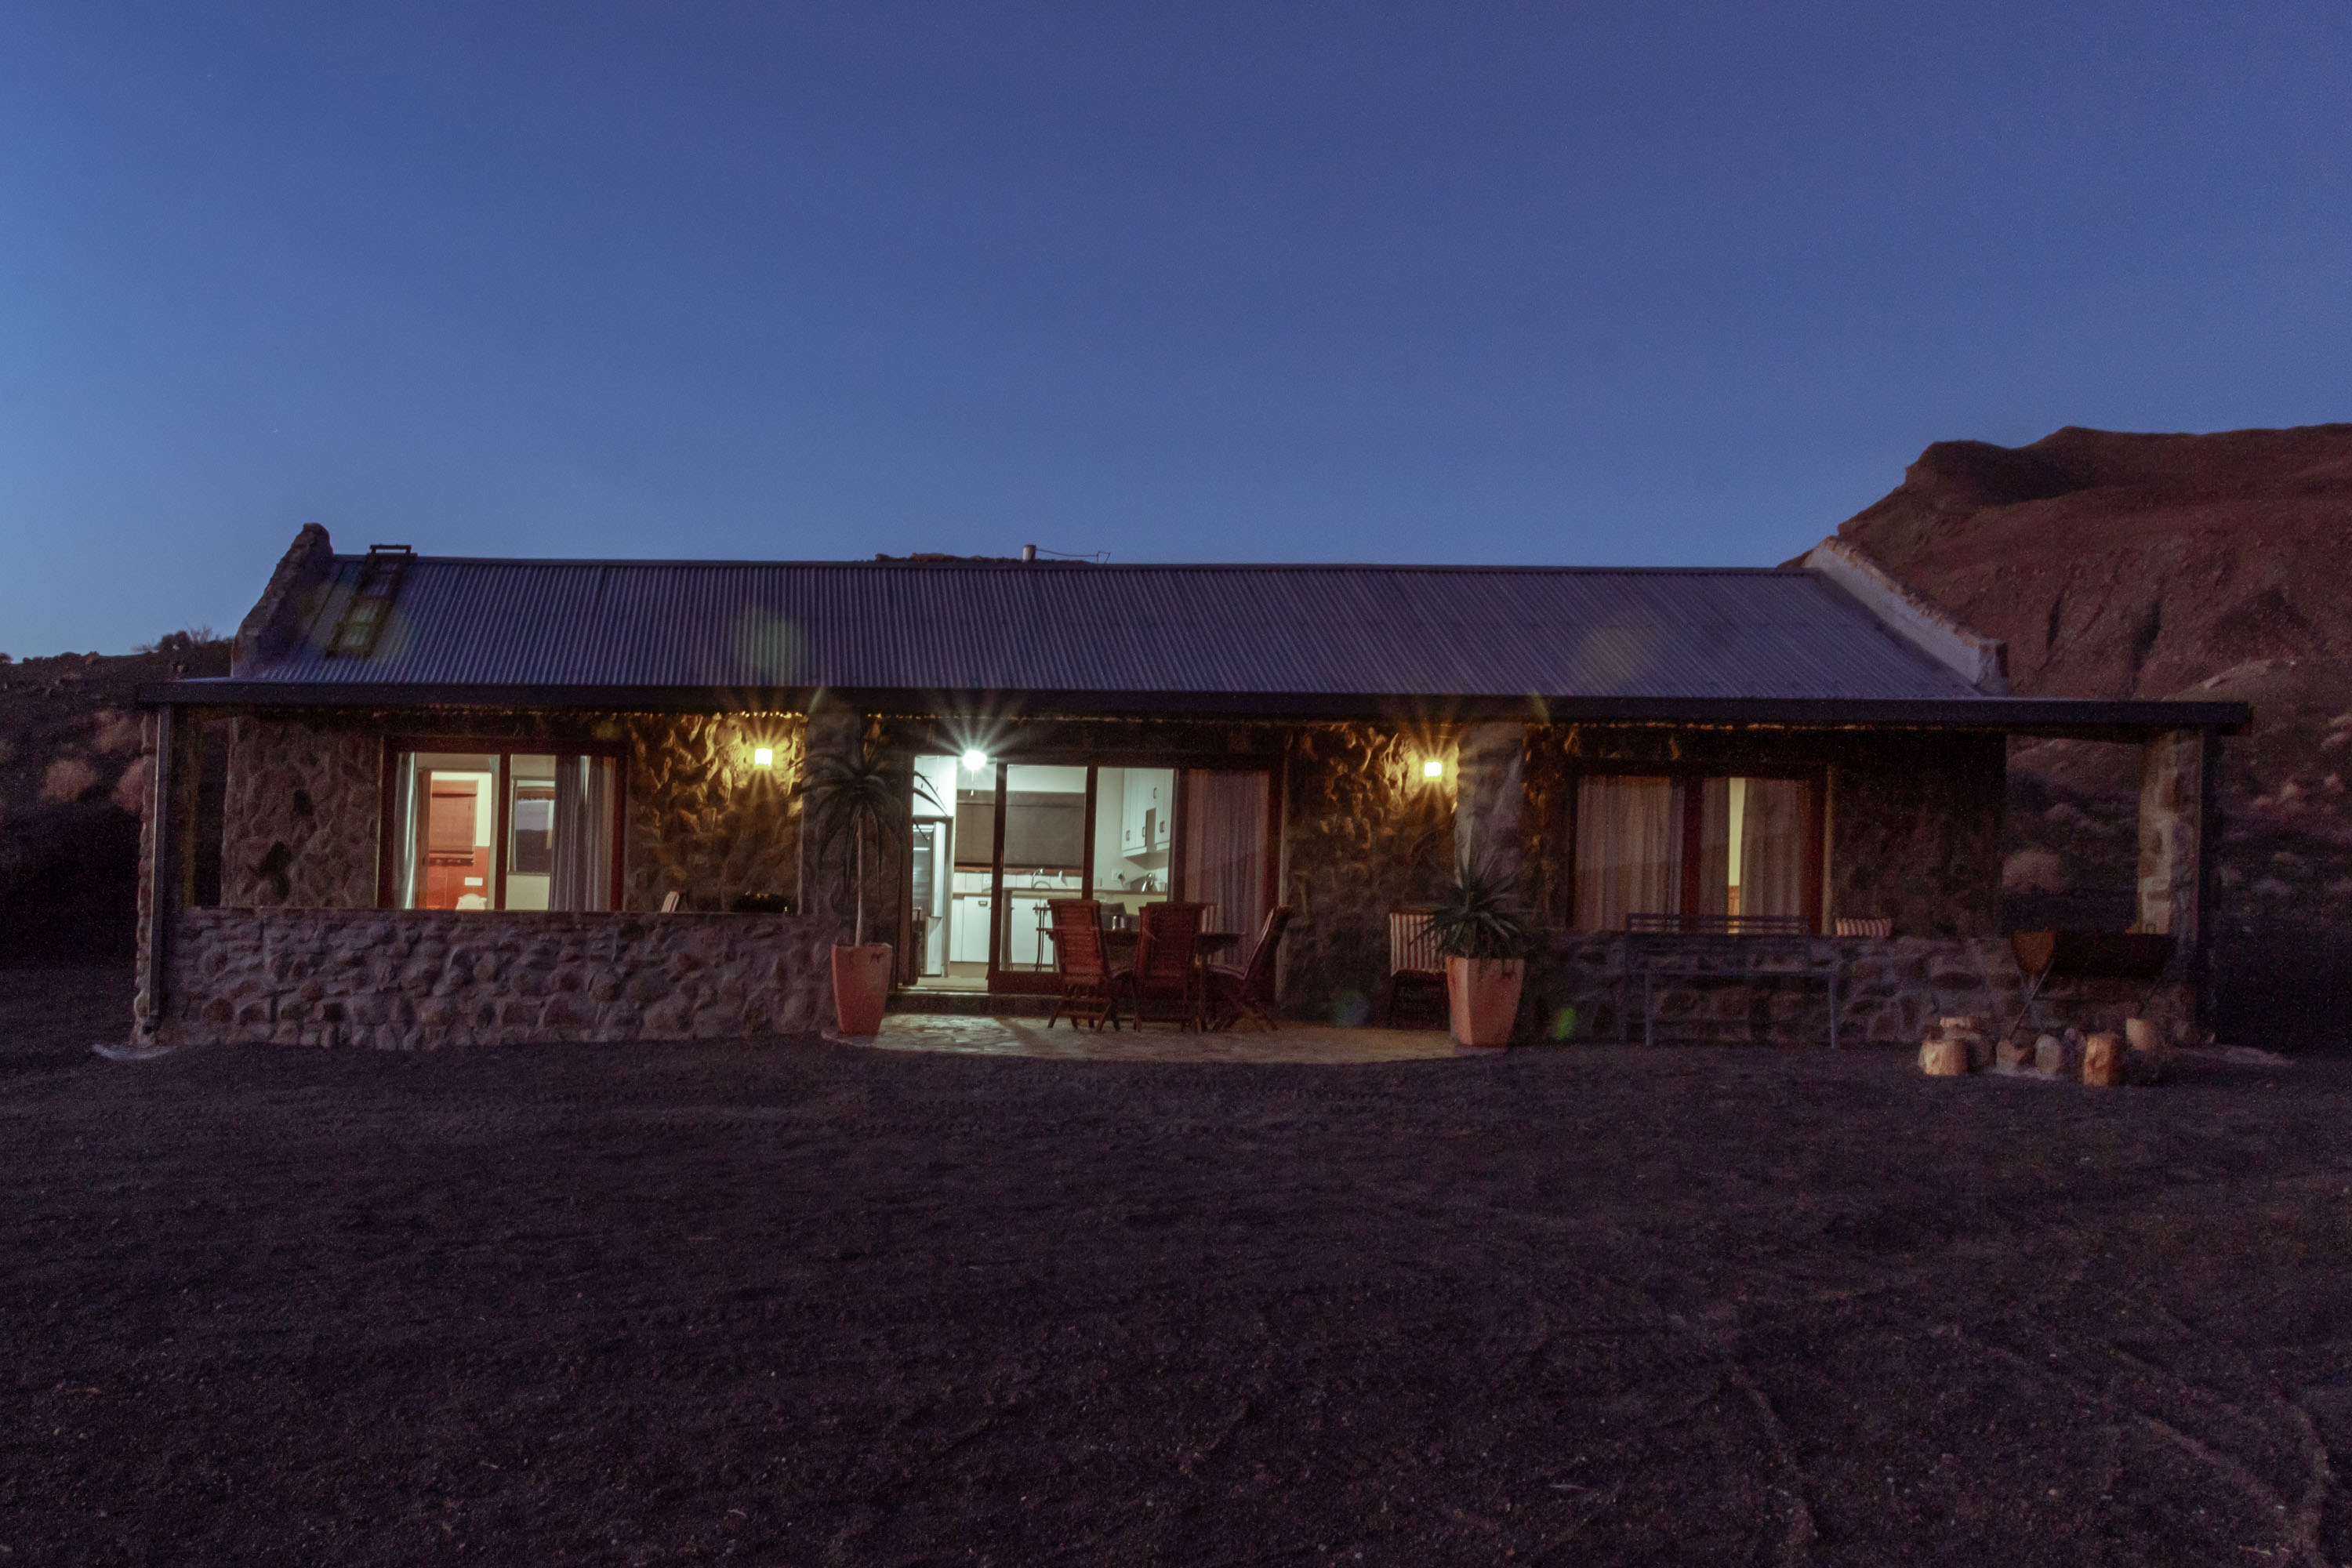 The cottage at night